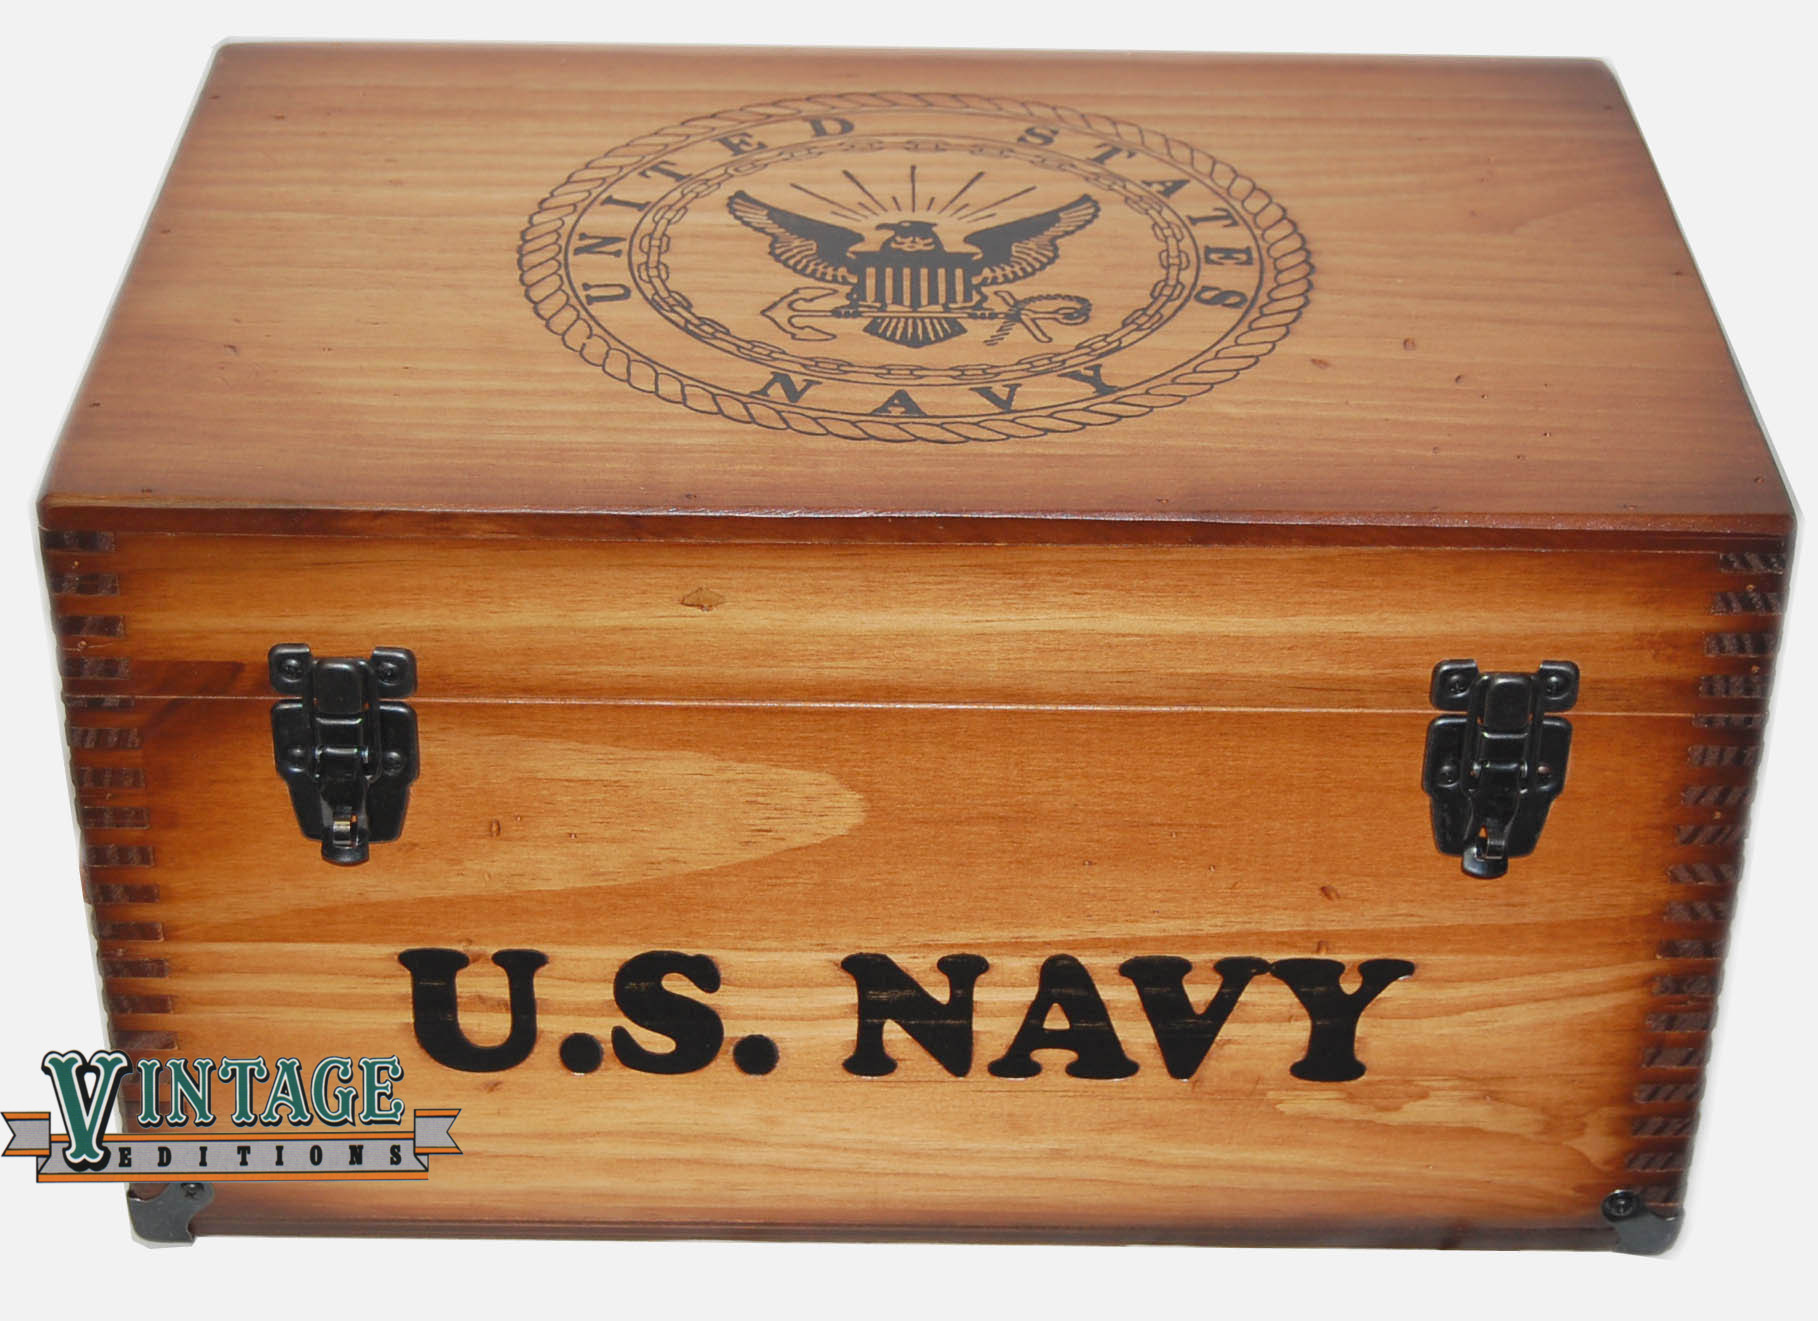 military gifts vintage editionsvintage editions